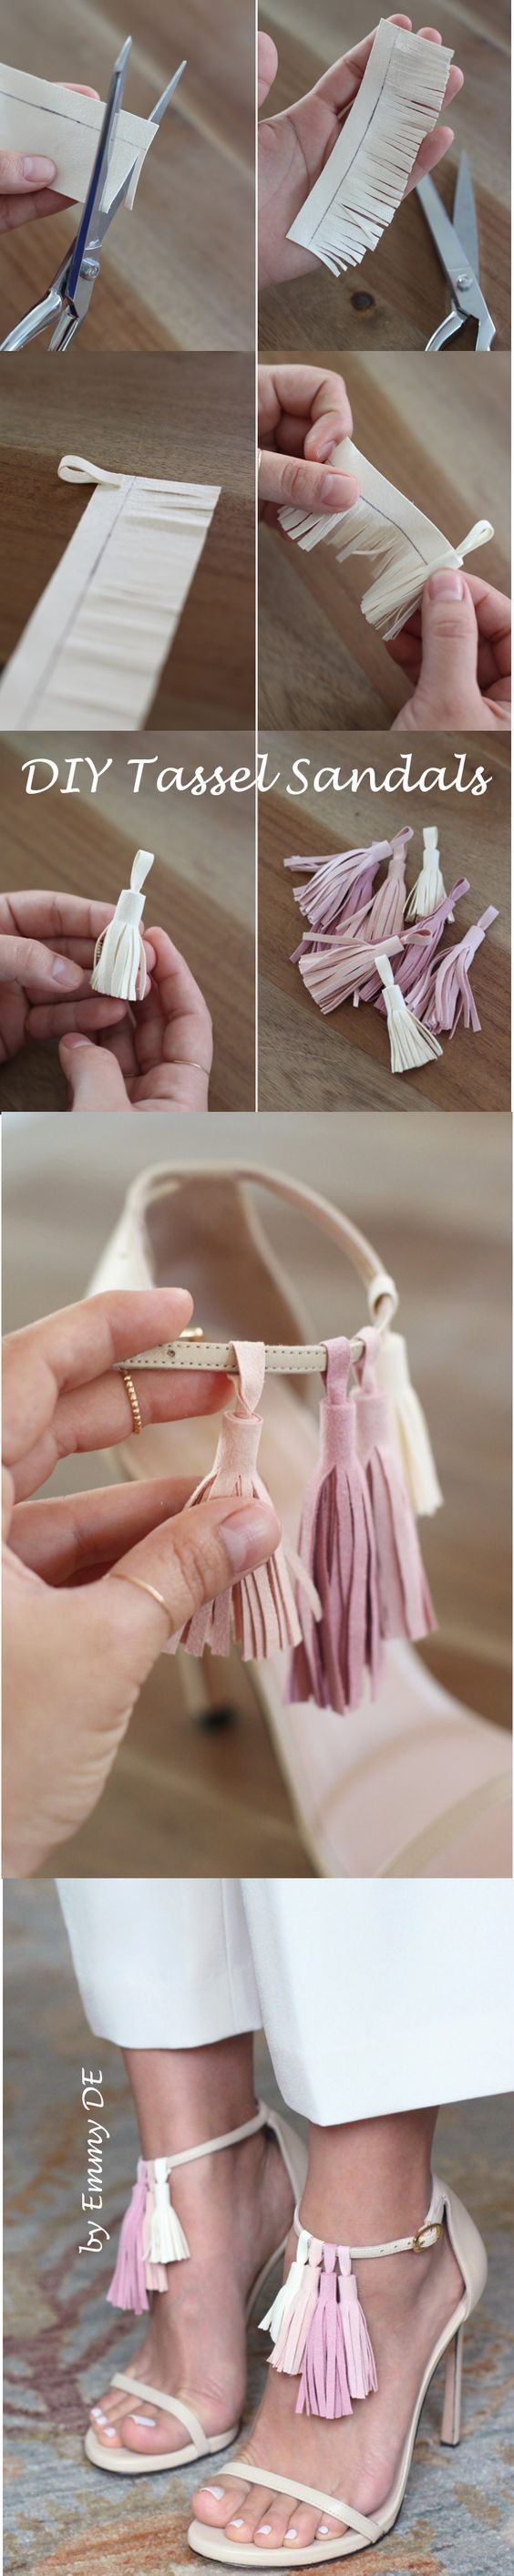 15+ DIY Shoe Makeovers Top Shoe refashion Ideas